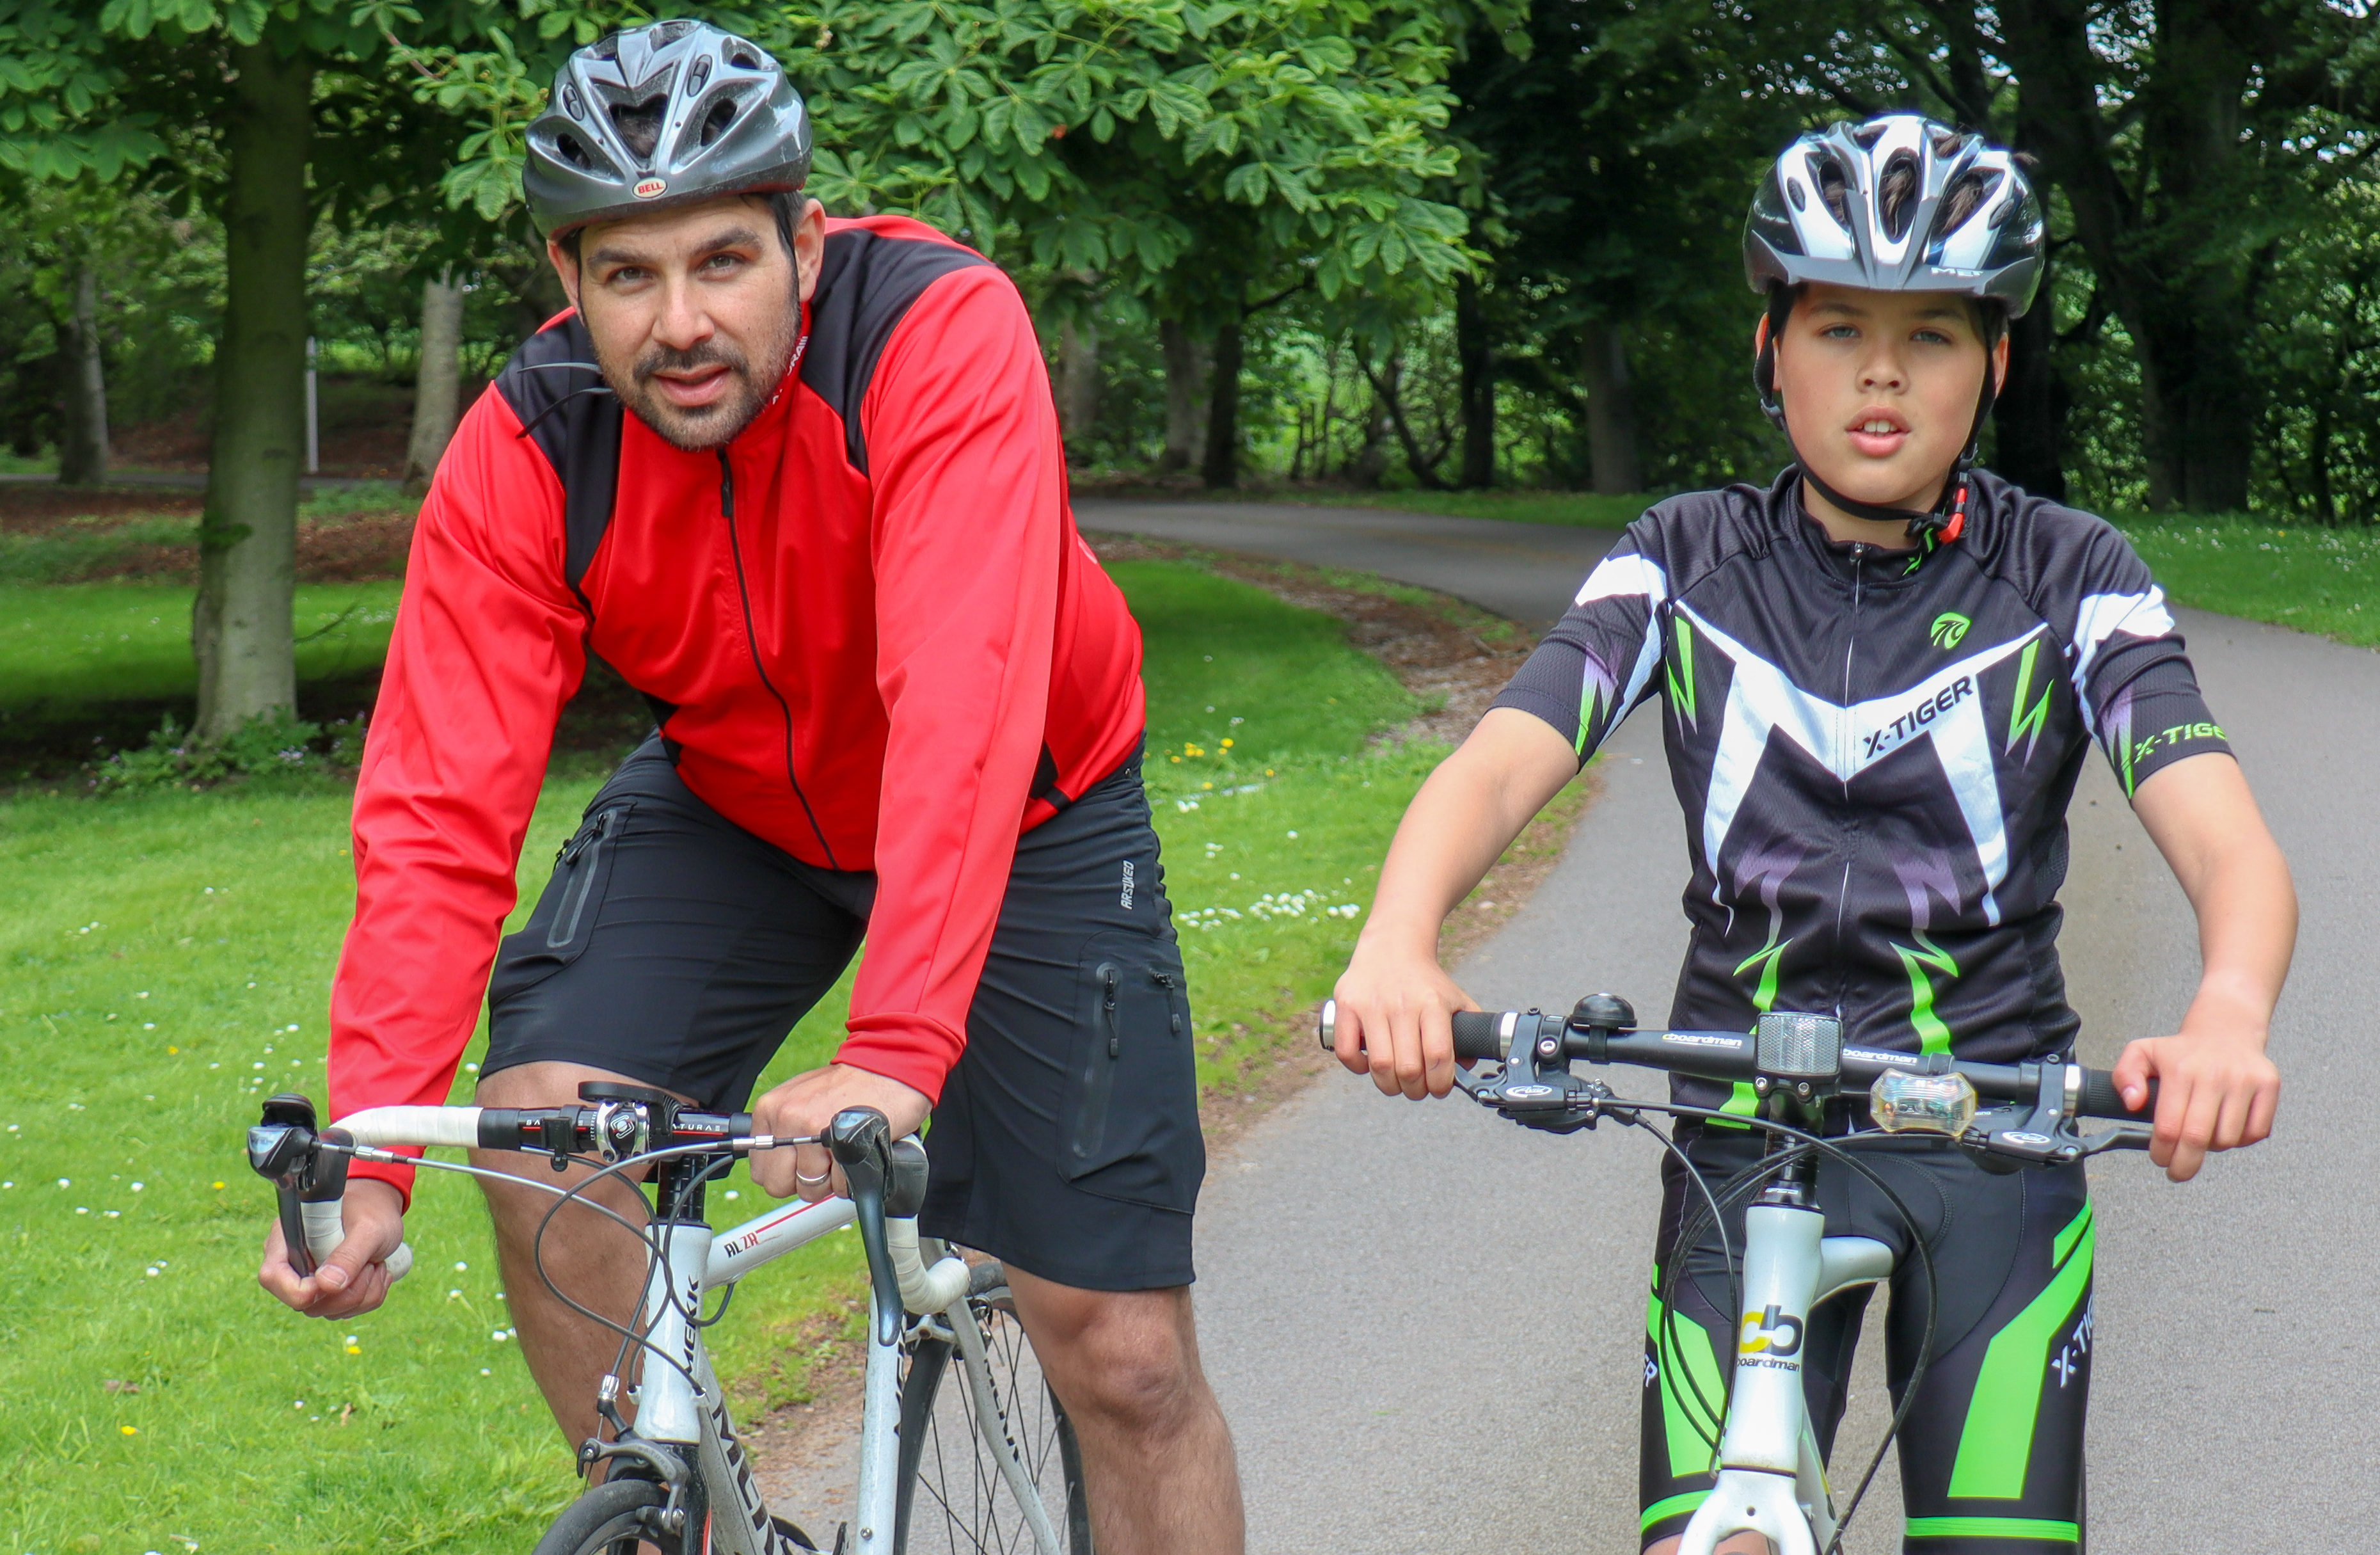 Shaun and Reuben Waddell are all set for their own epic 'Tour de France' later this month.